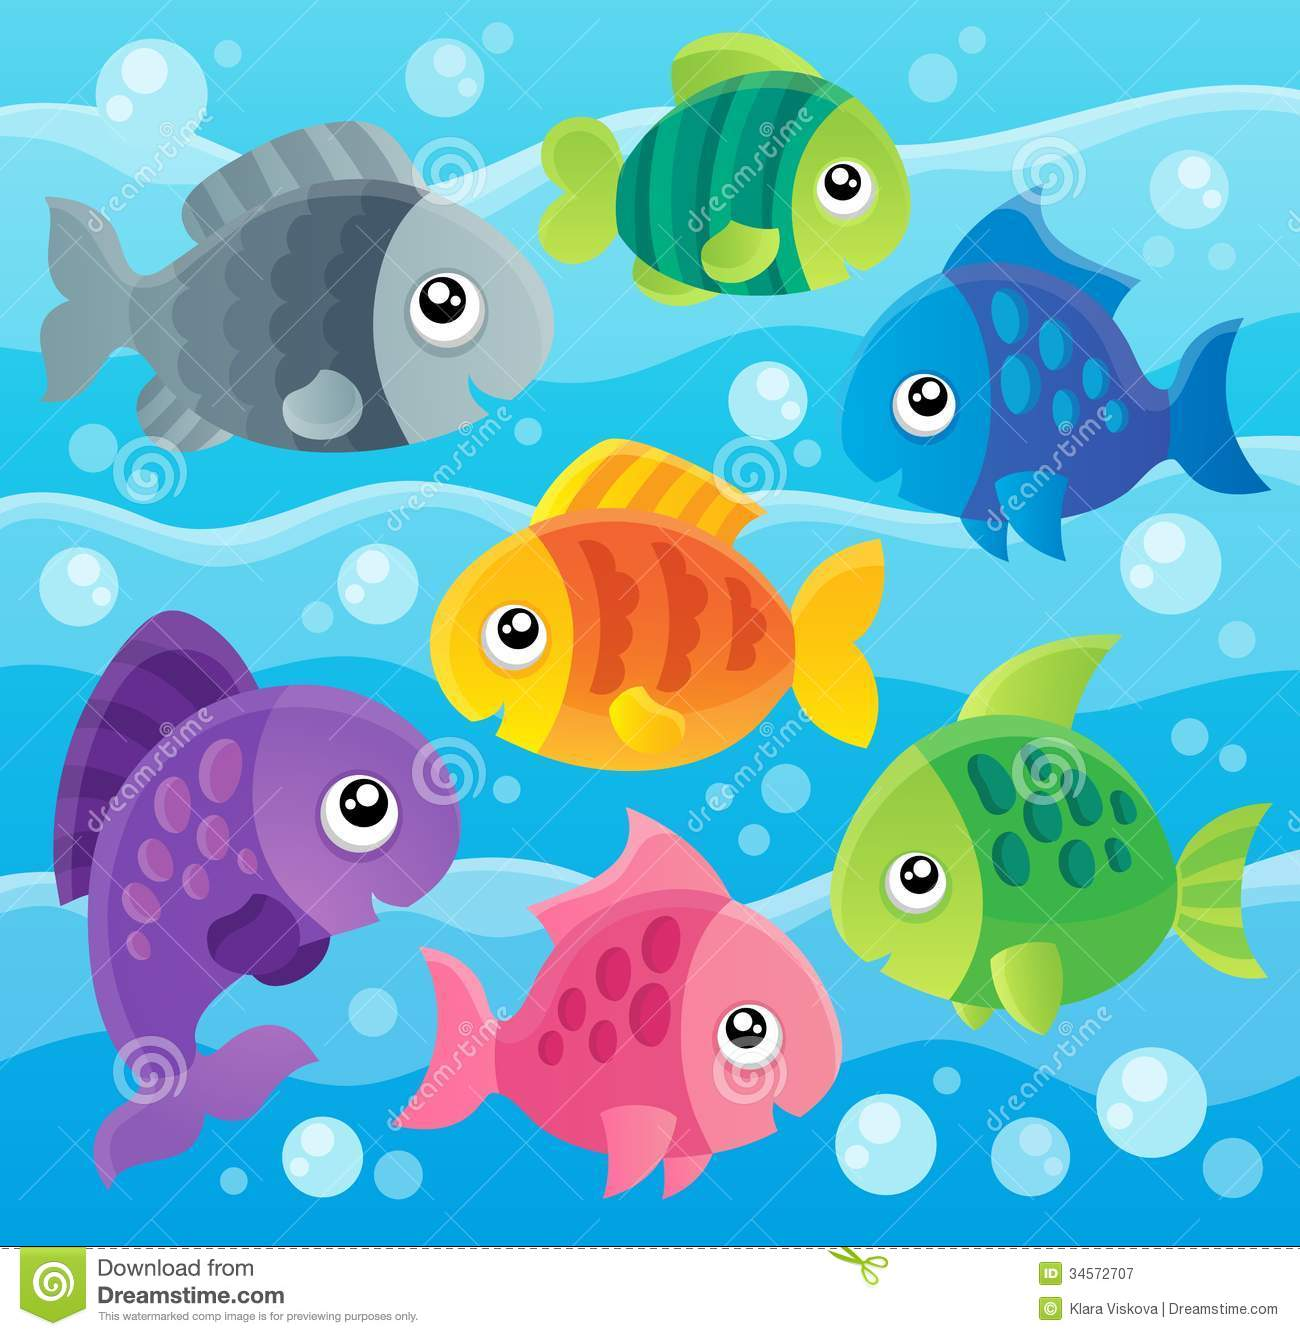 Fish theme image 7 royalty free stock photography image for 7 fishes list